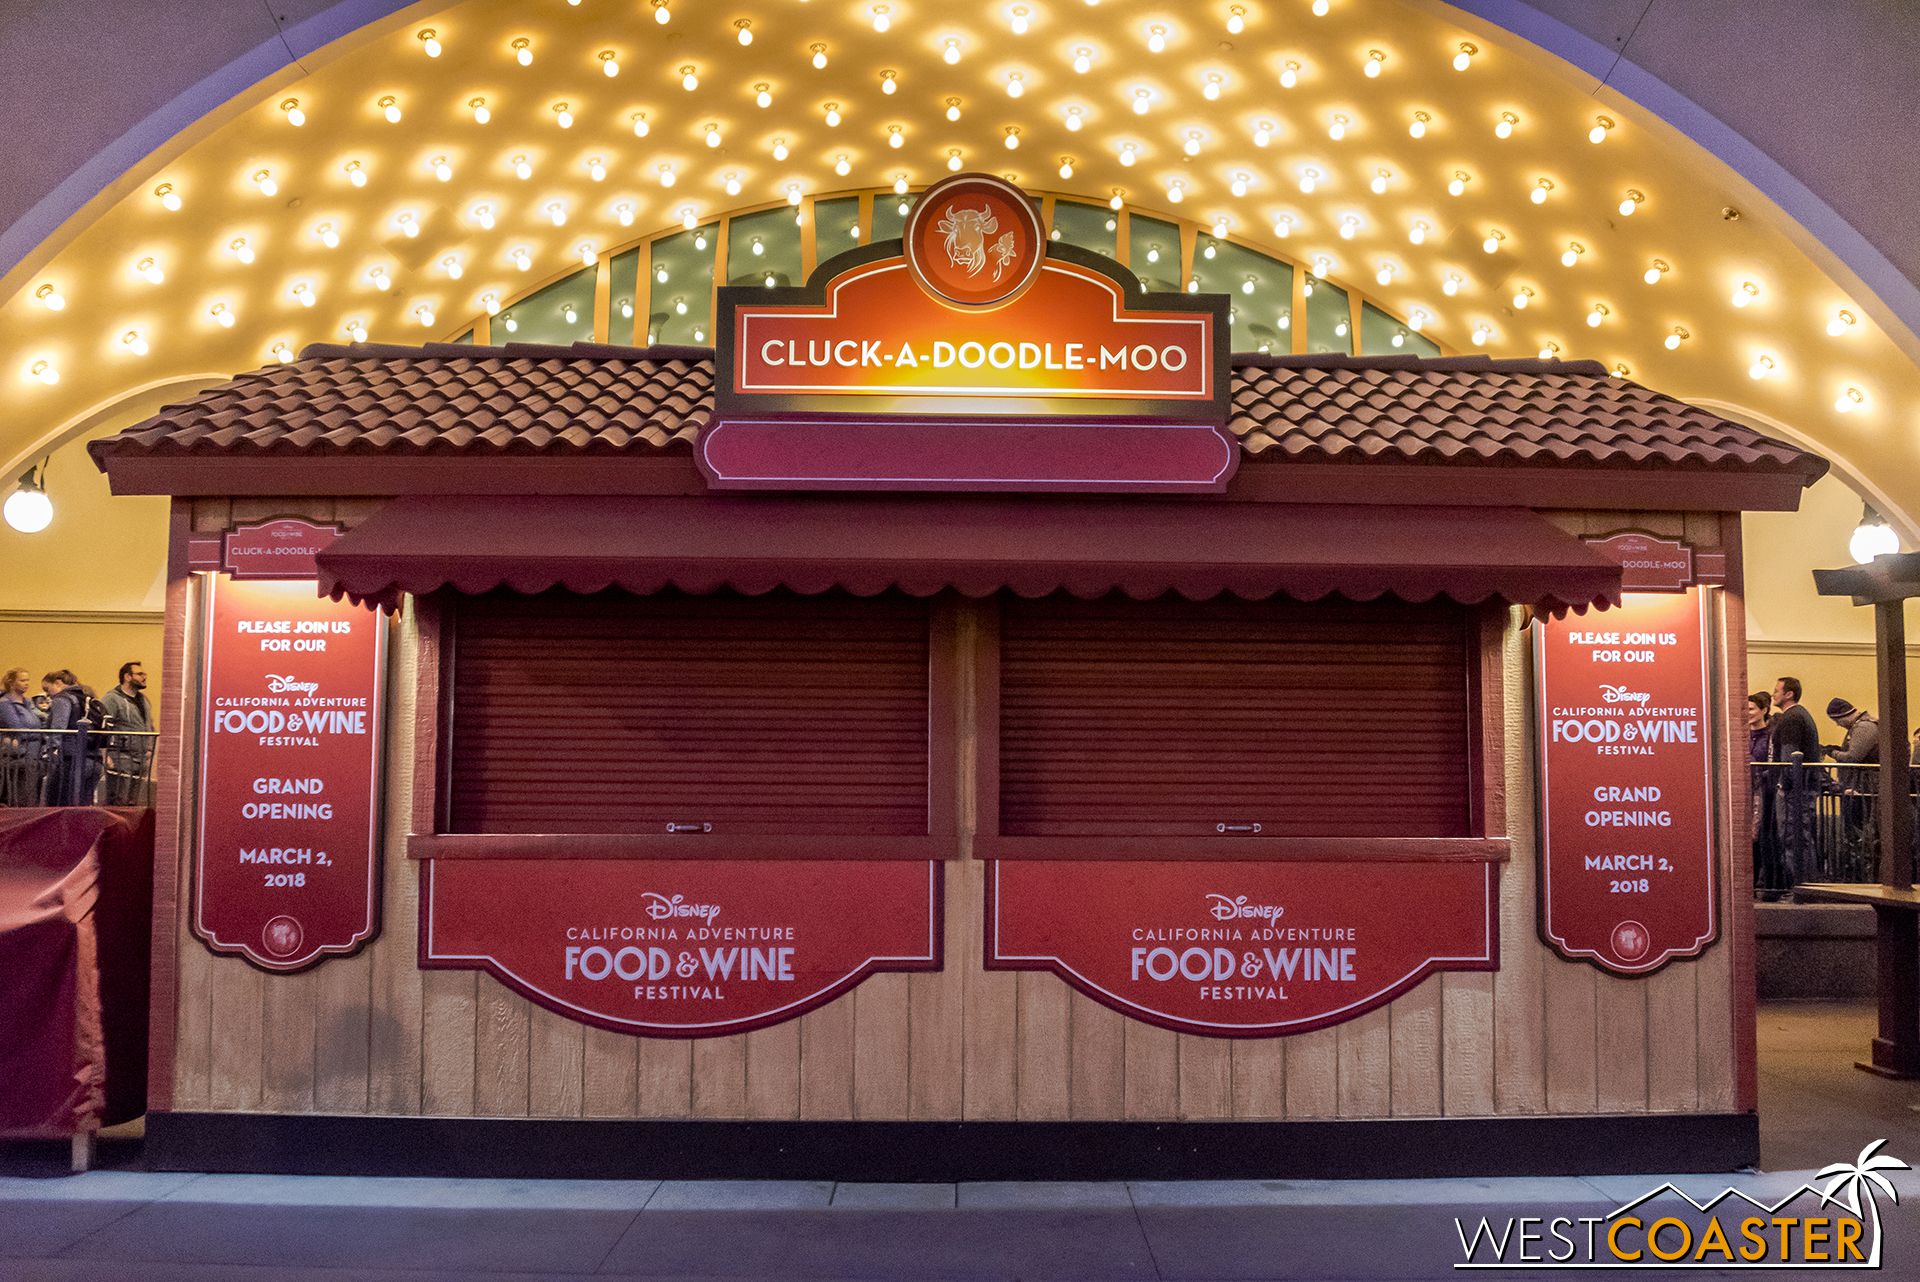 The only double window booth gets center staging in front of the Little Mermaid show building.